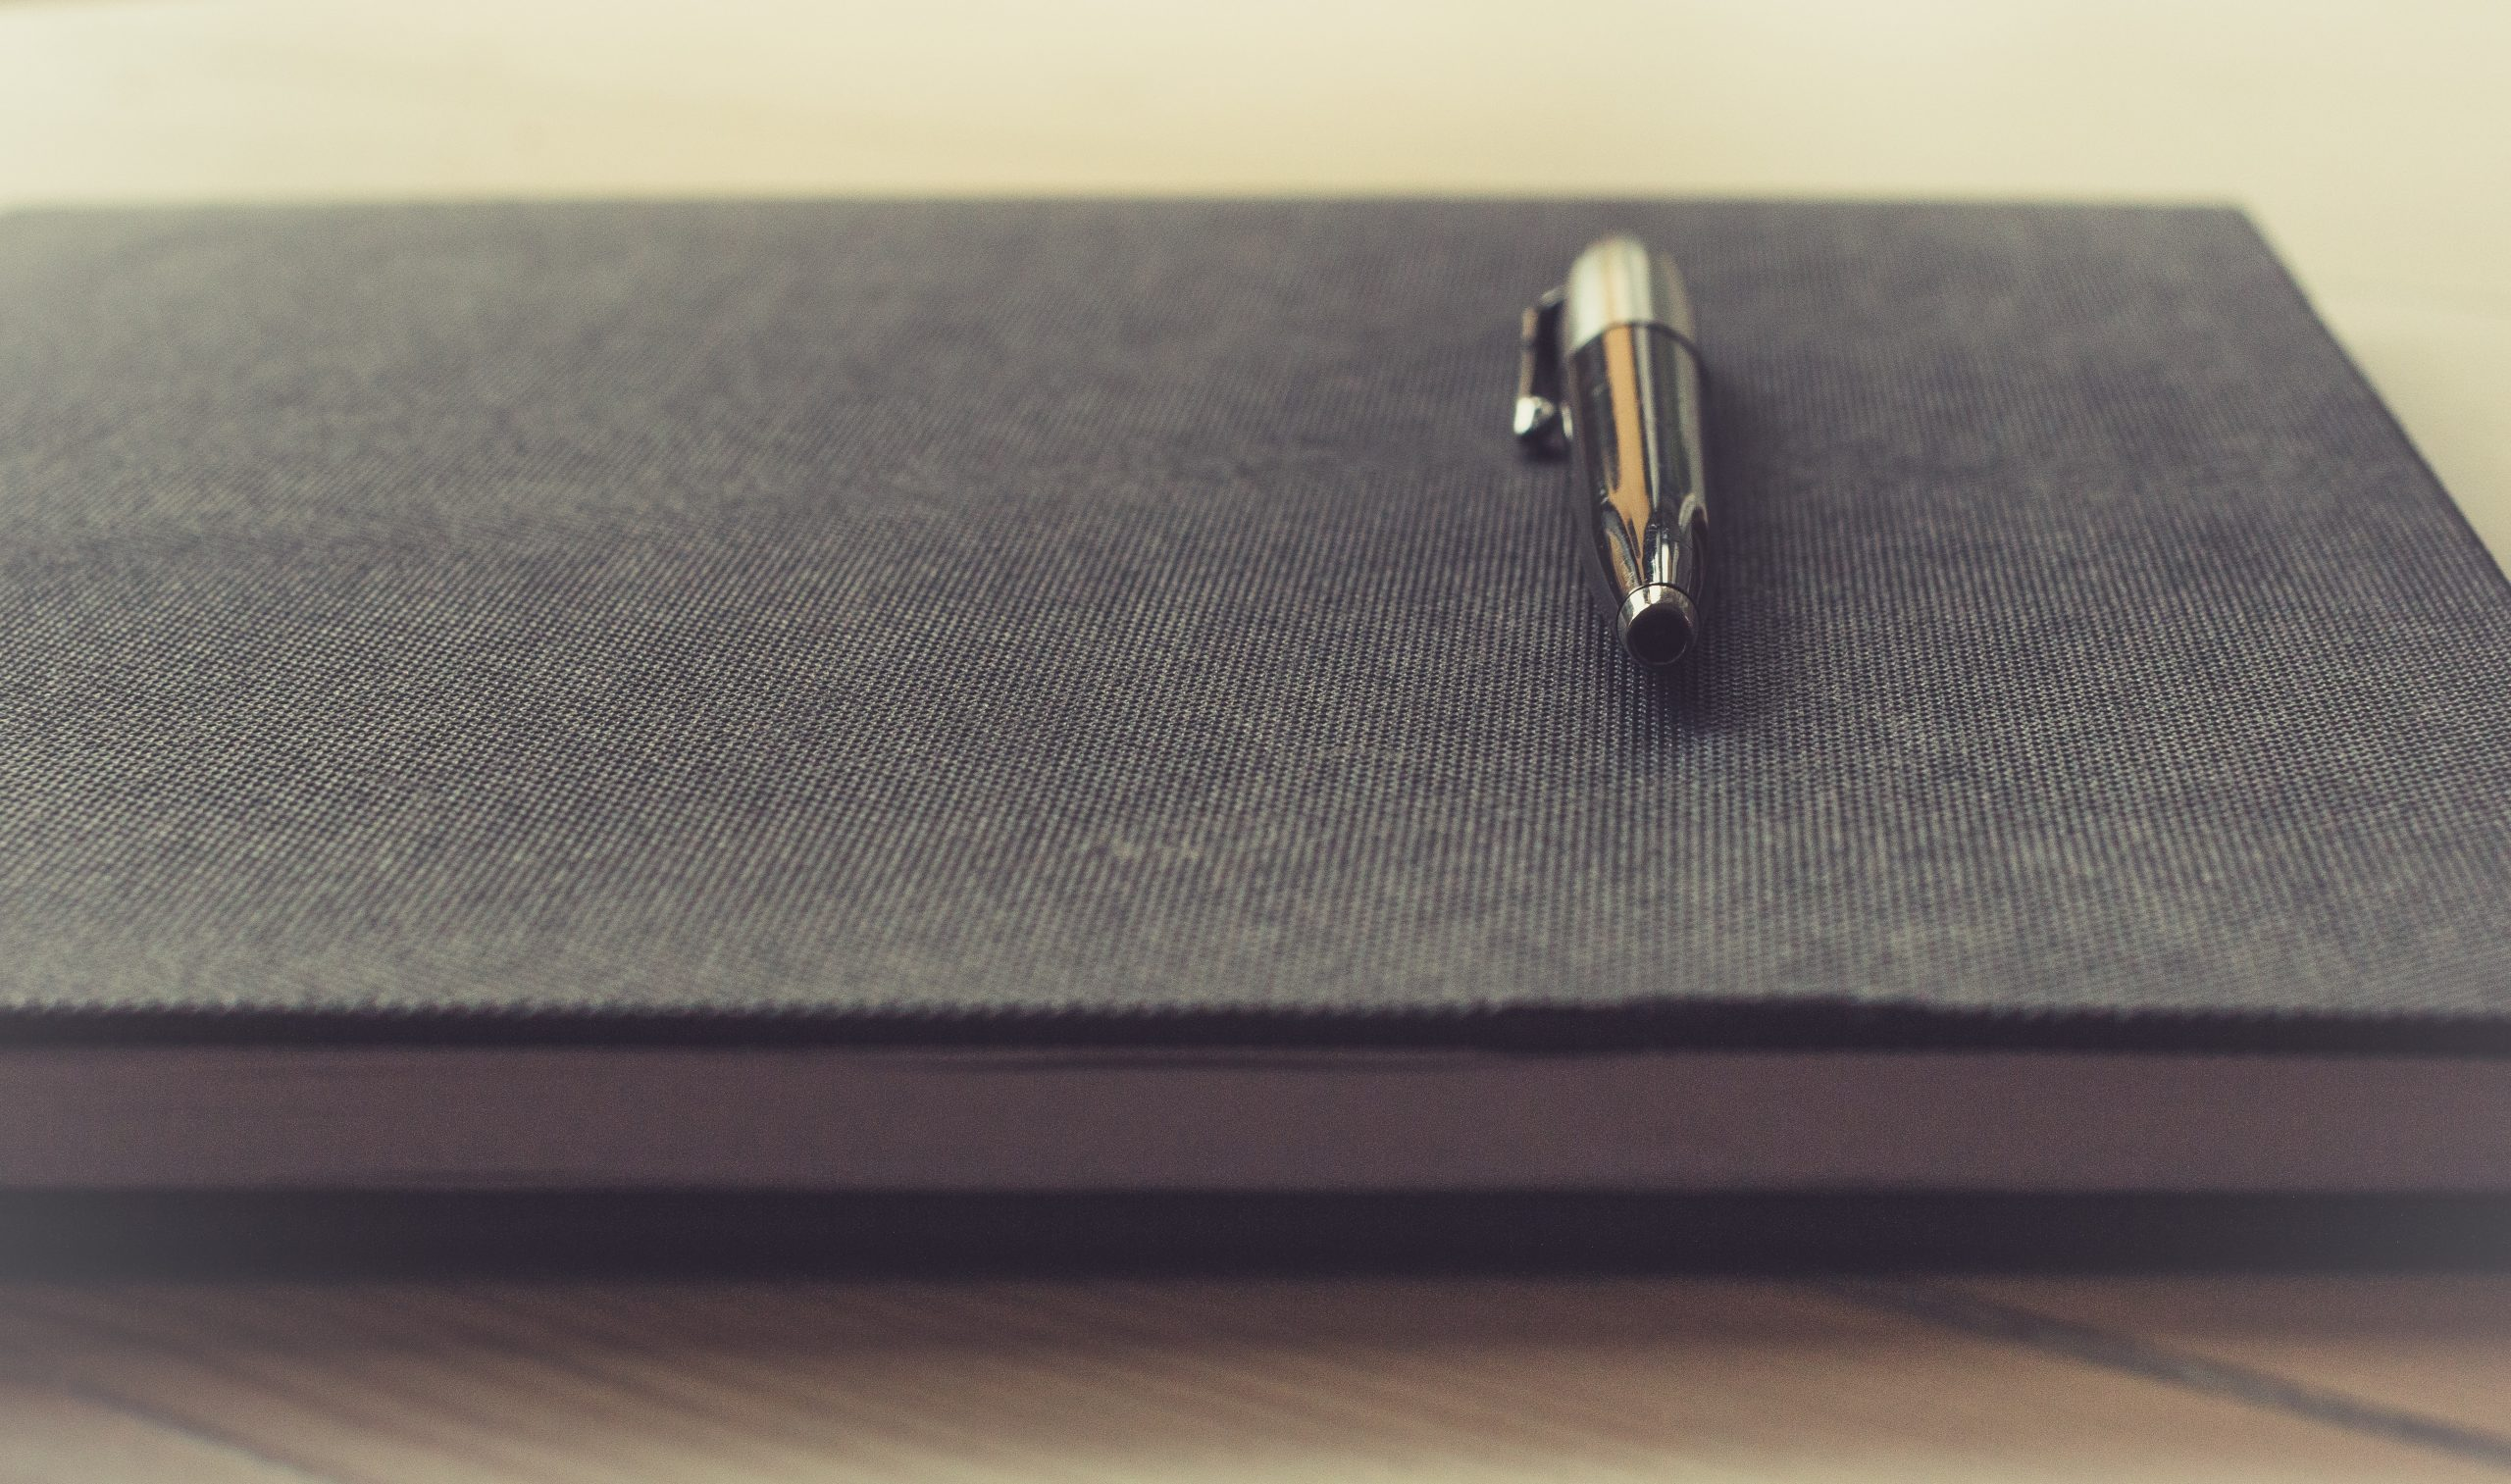 image of a writer's journal and fountain pen